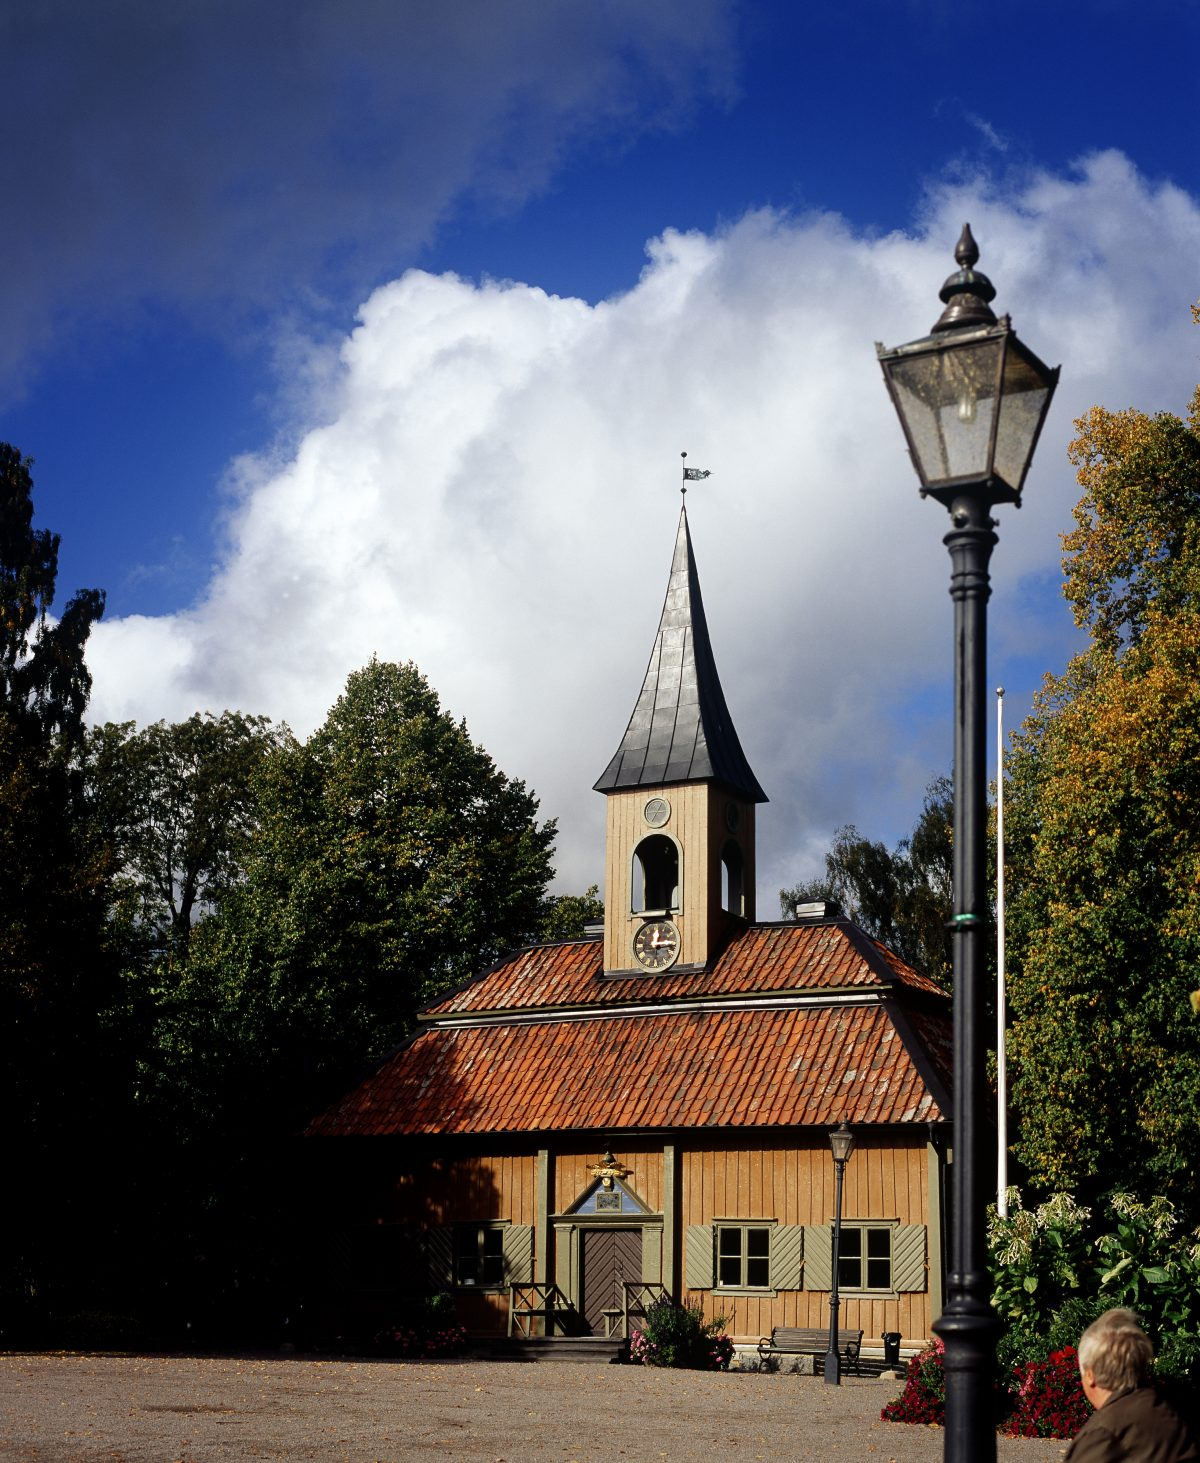 Sigtuna's City Hall <br /> Photo: Linus Hallgren